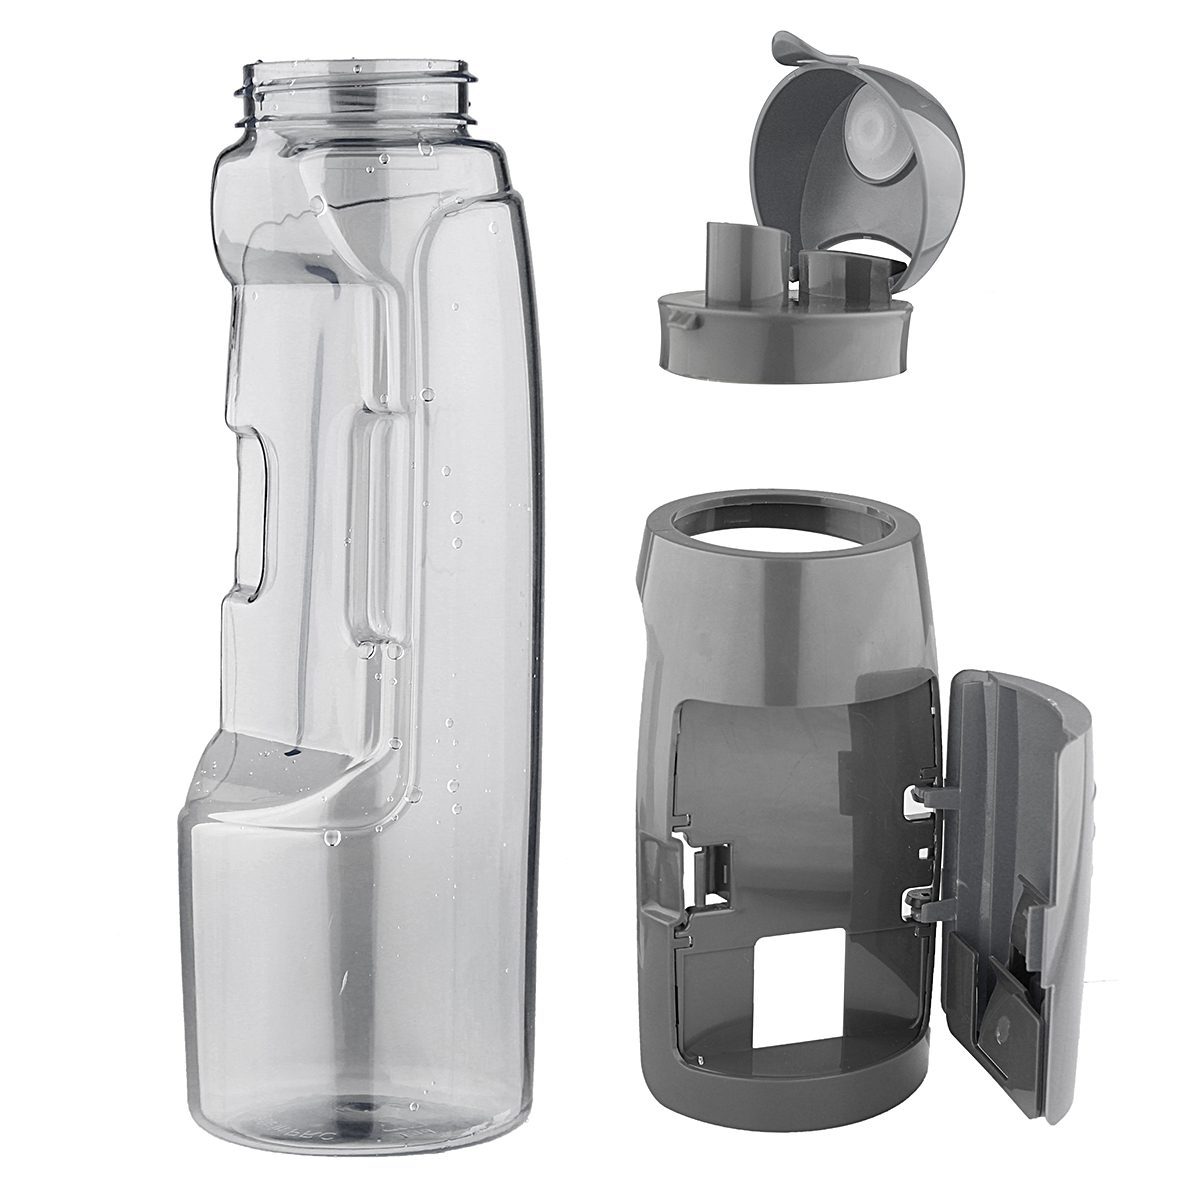 Sports Bottle With Storage Compartment: 750ML Sports Travel Water Bottle Kettle With Storage